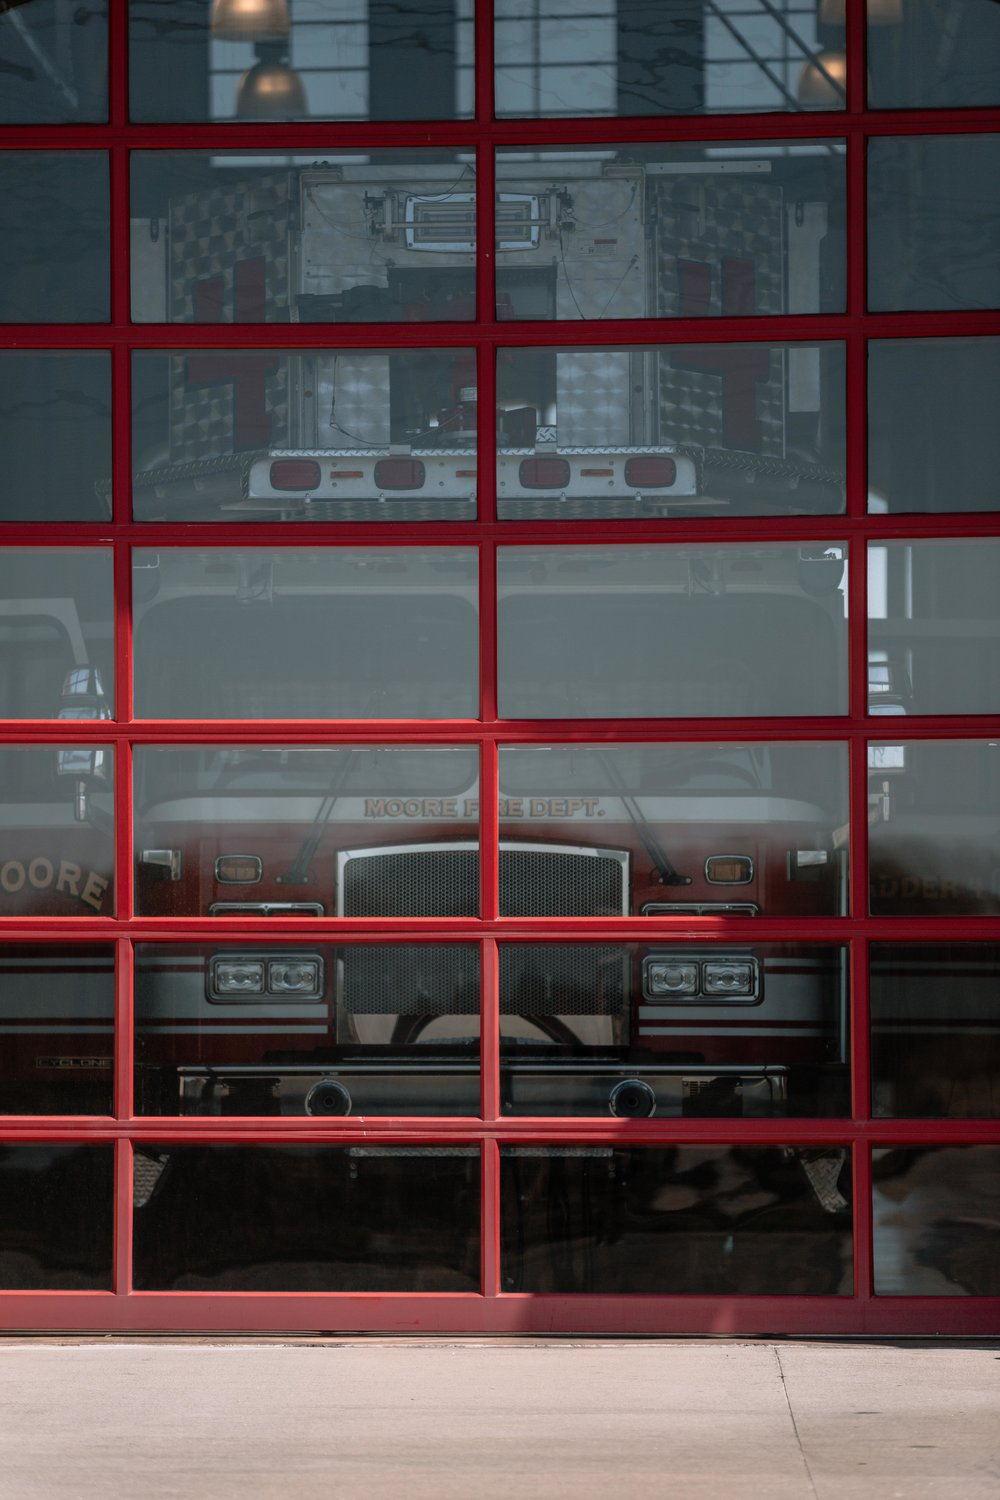 WindsorDoor_CommercialDoors_HighFiveMedia_MooreFireStation_32.jpg